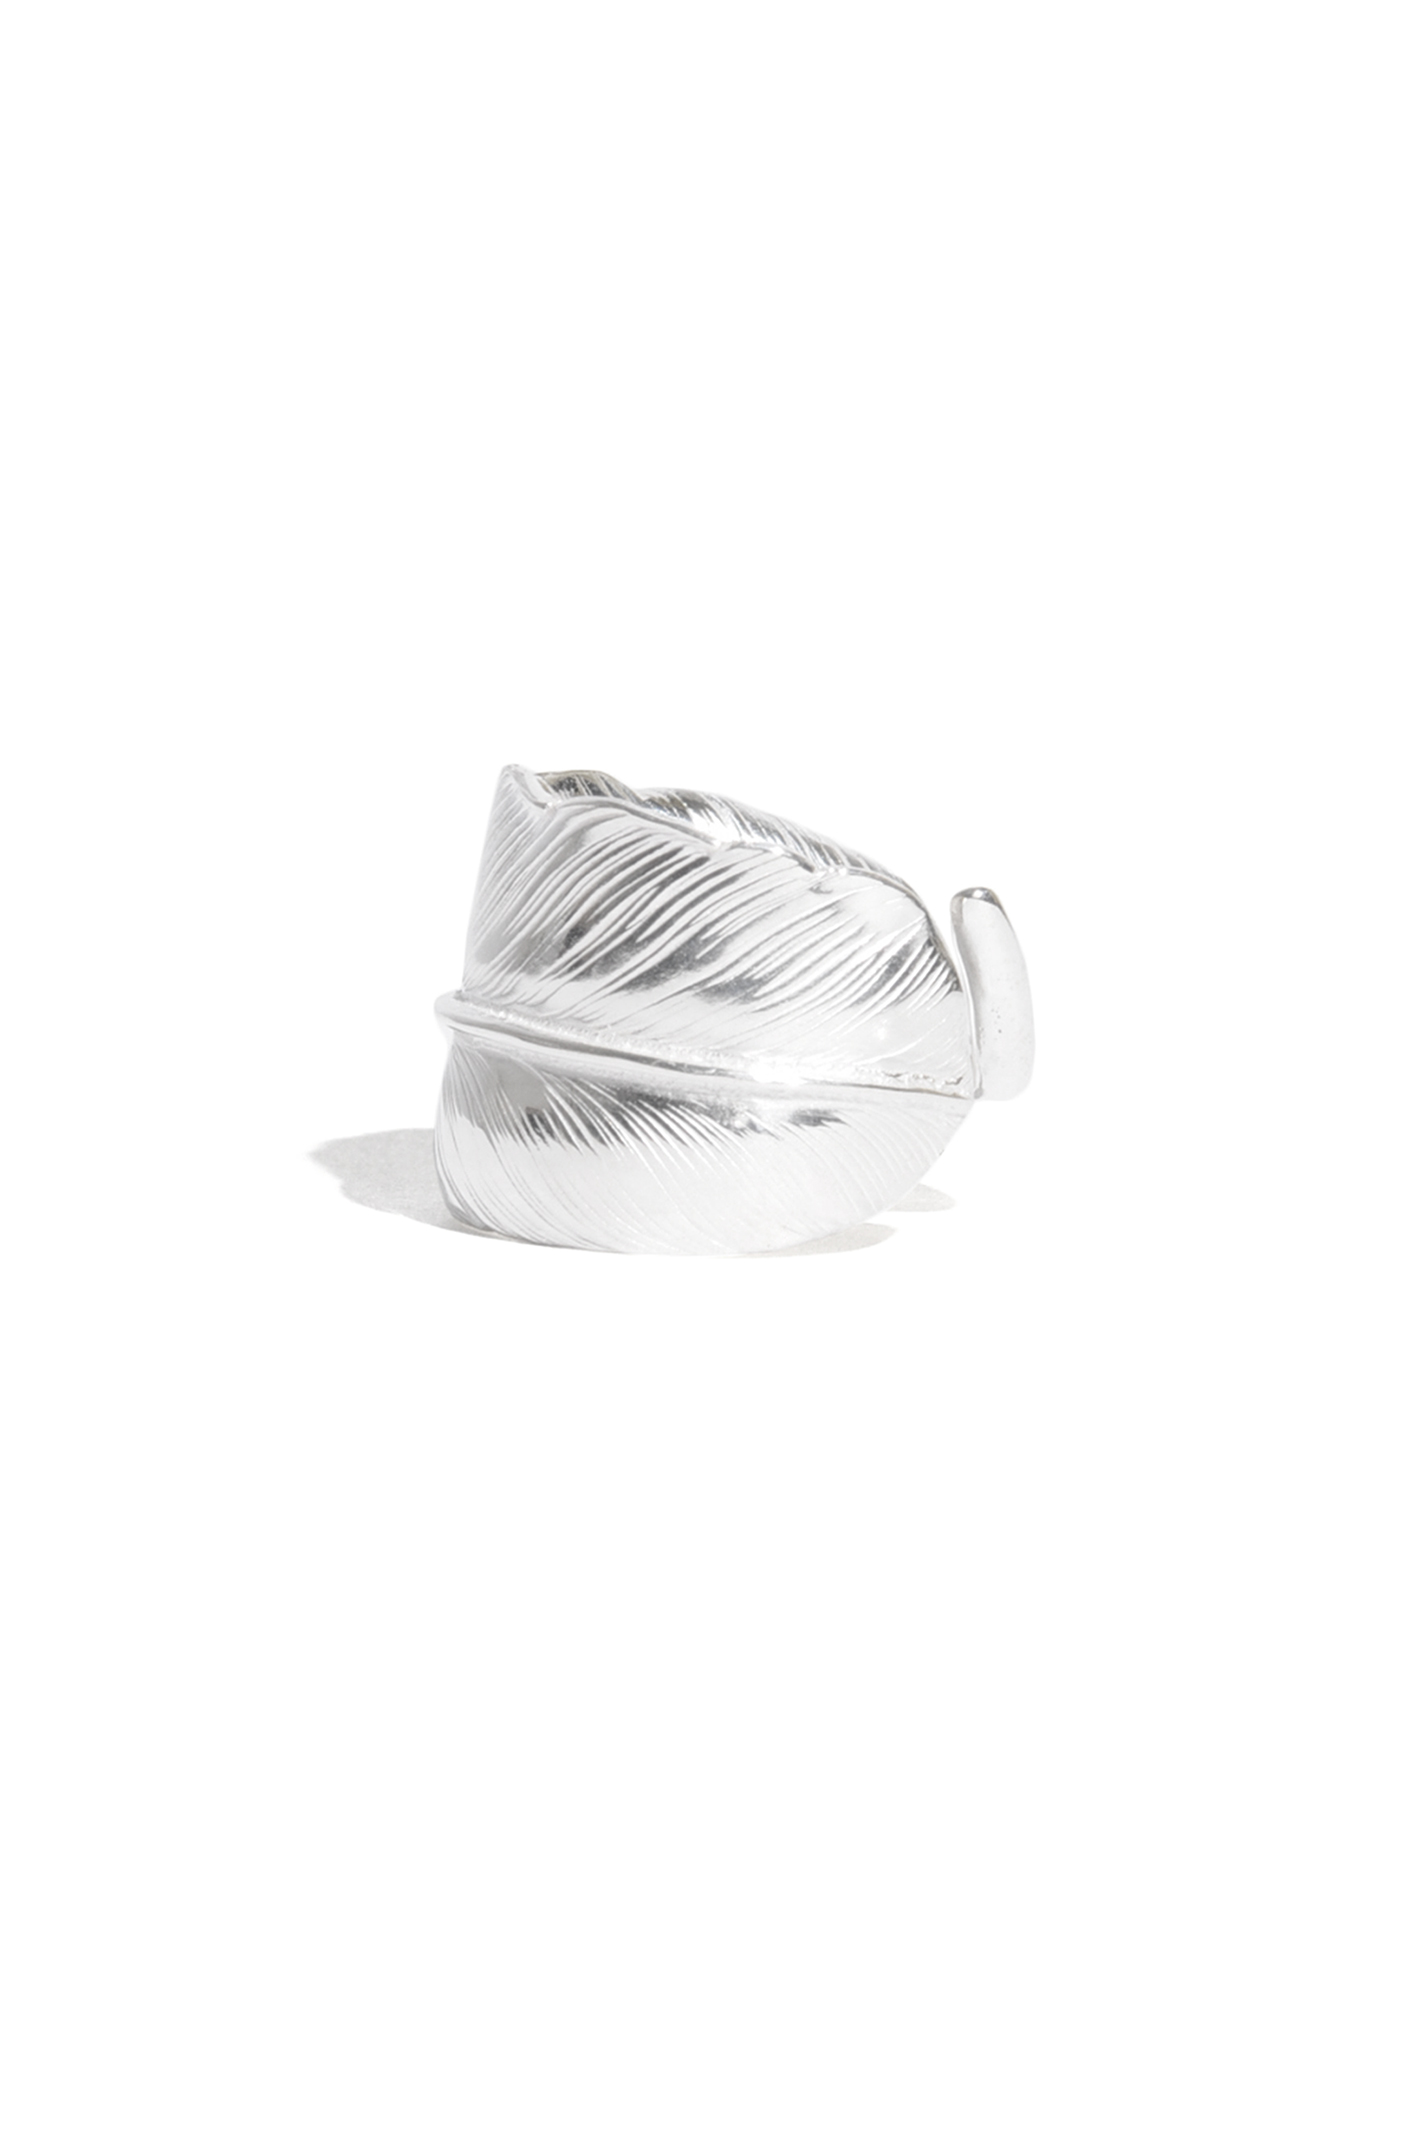 画像3: 【LARRY SMITH】 PLAIN FEATHER RING